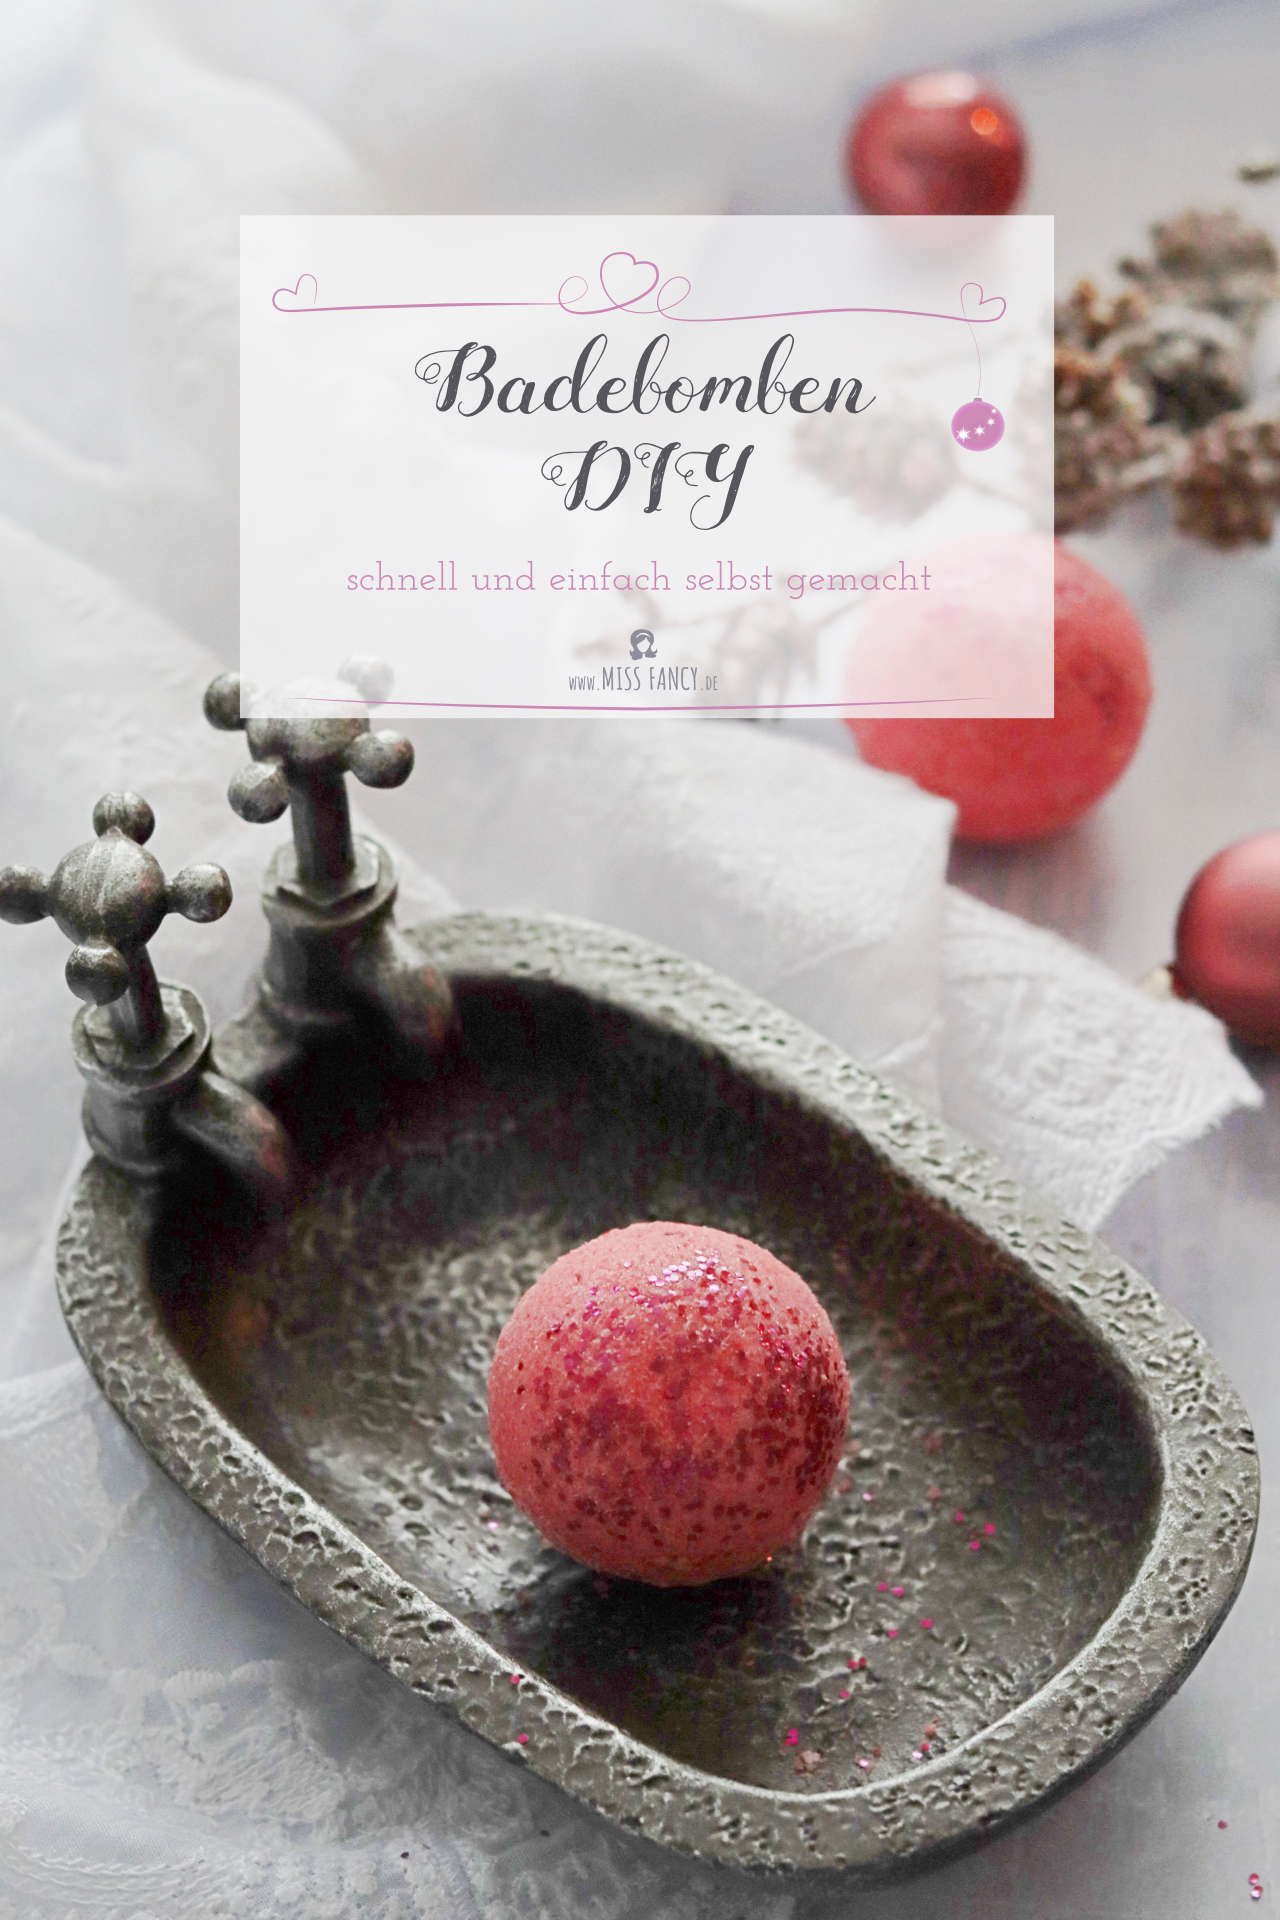 Beauty-Badebomben-DIY-1